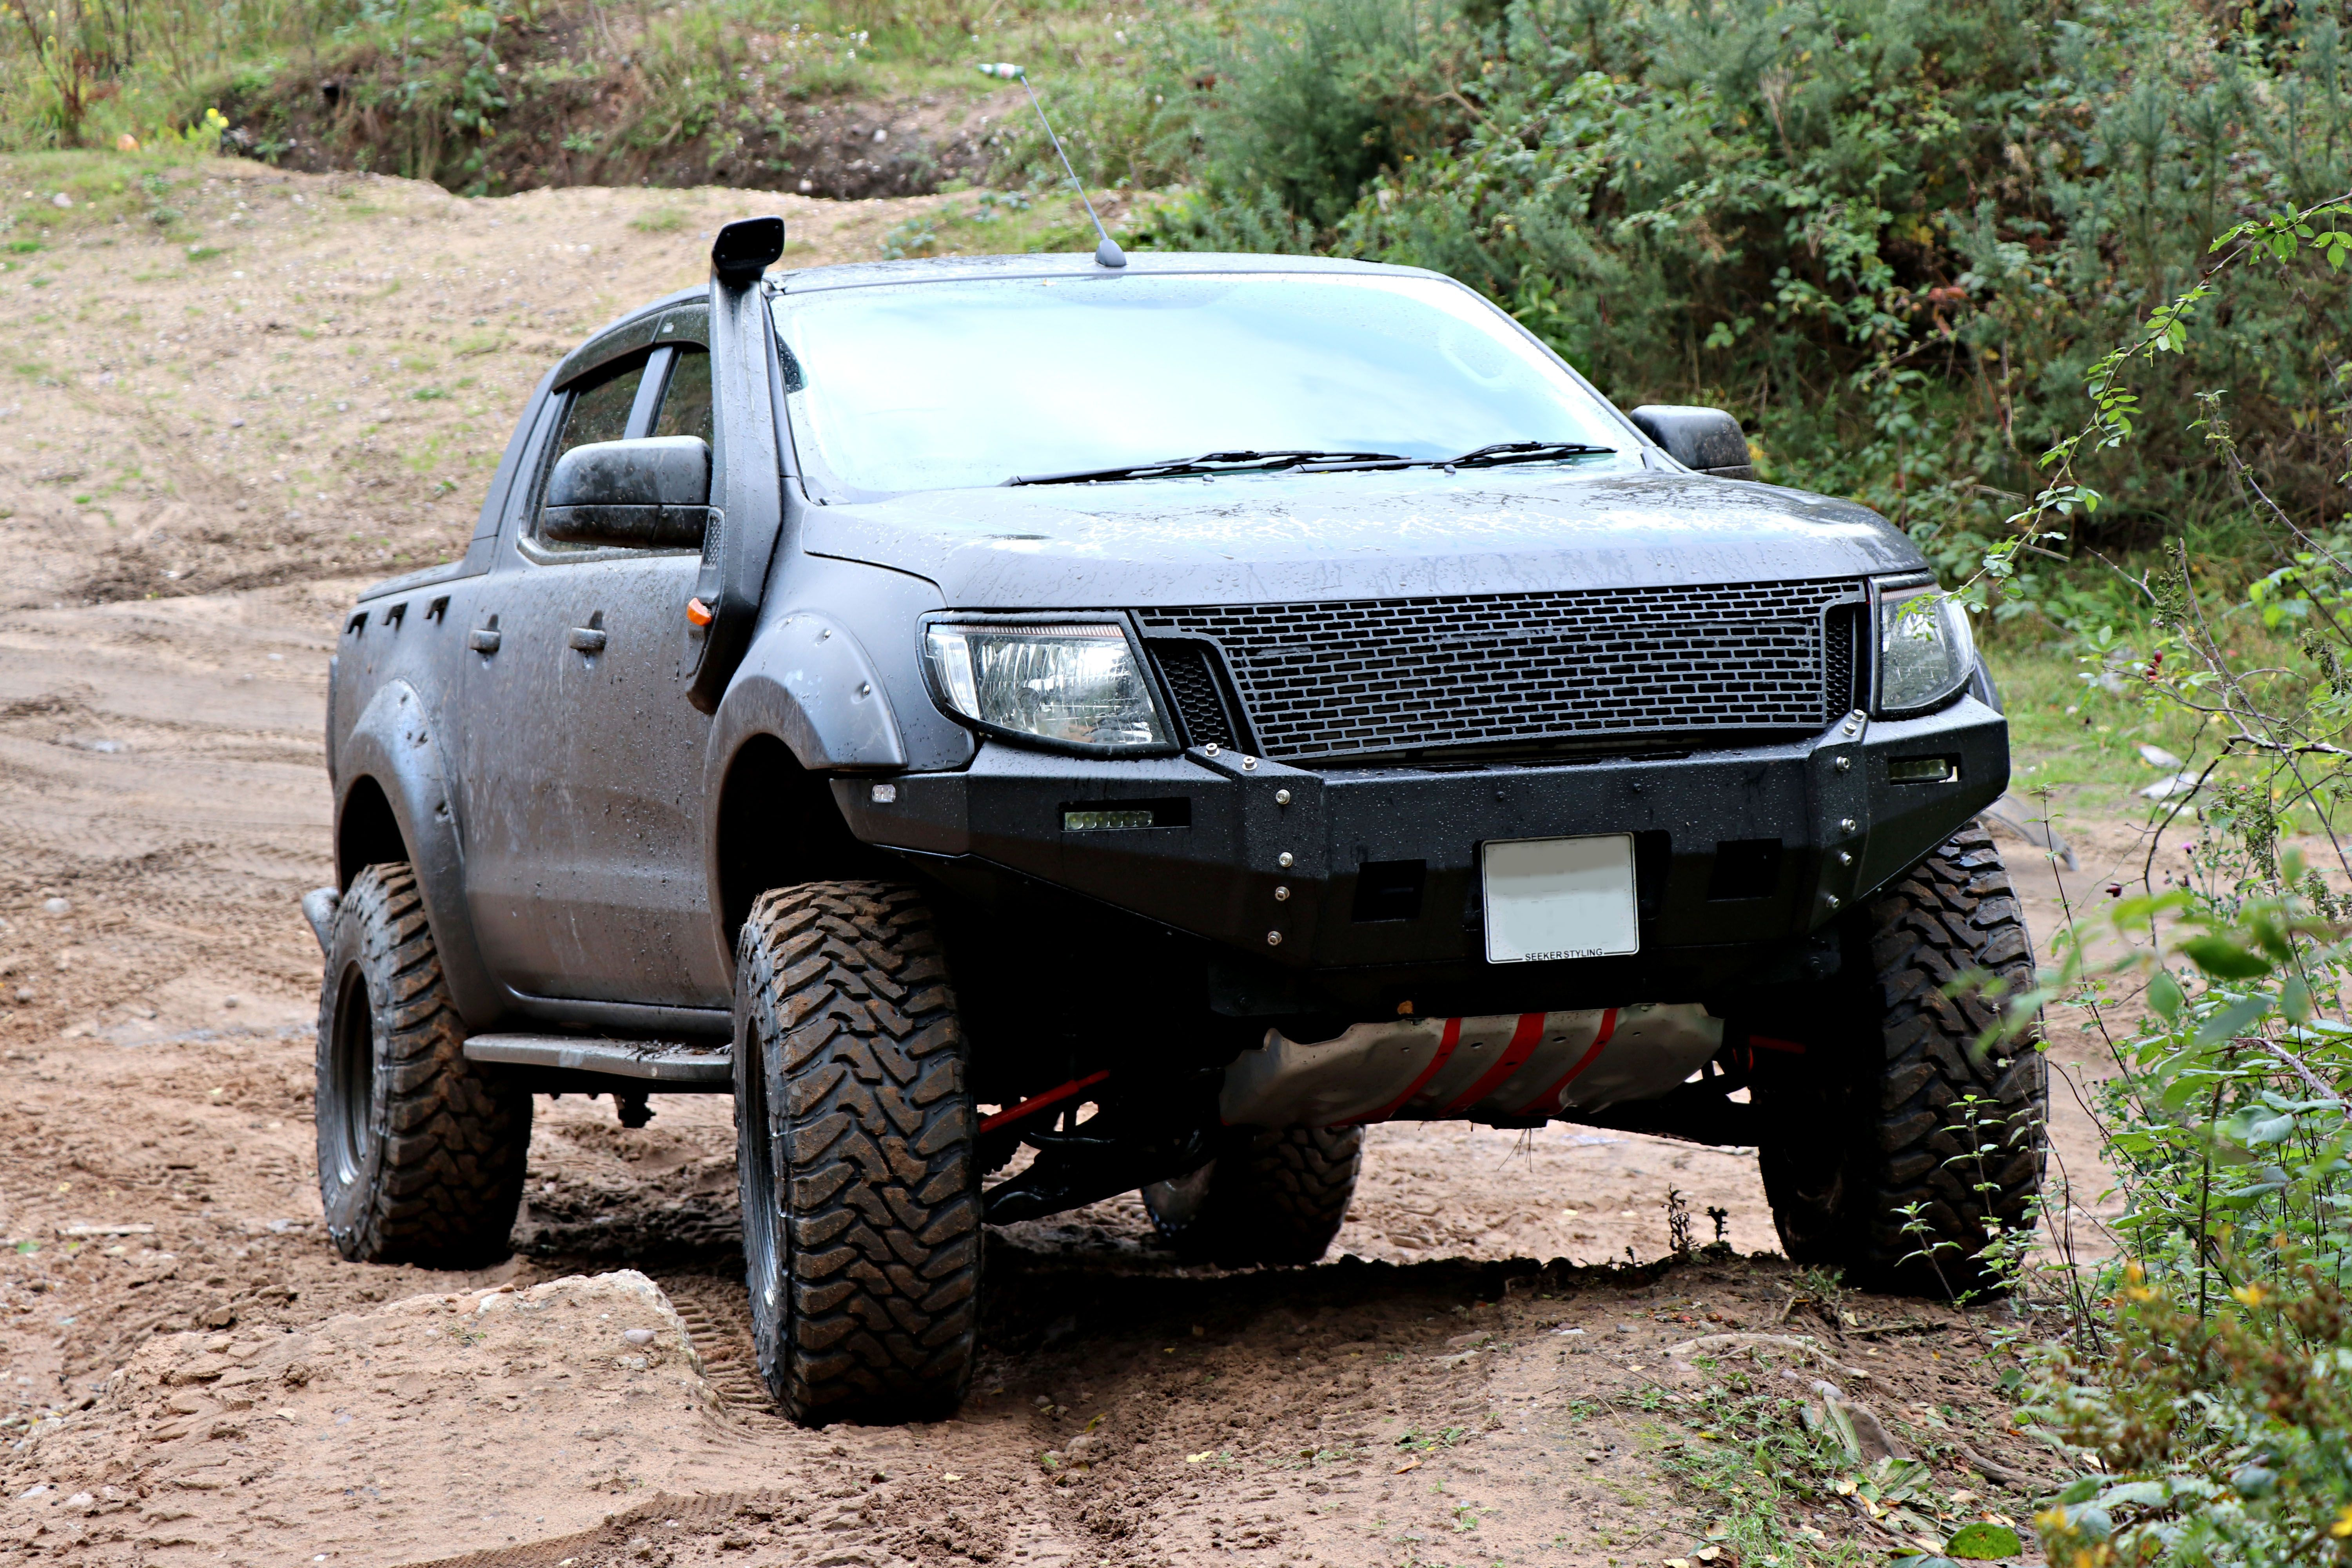 Ford Ranger SEEKER Raptor - Special Off-road Camo Edition!